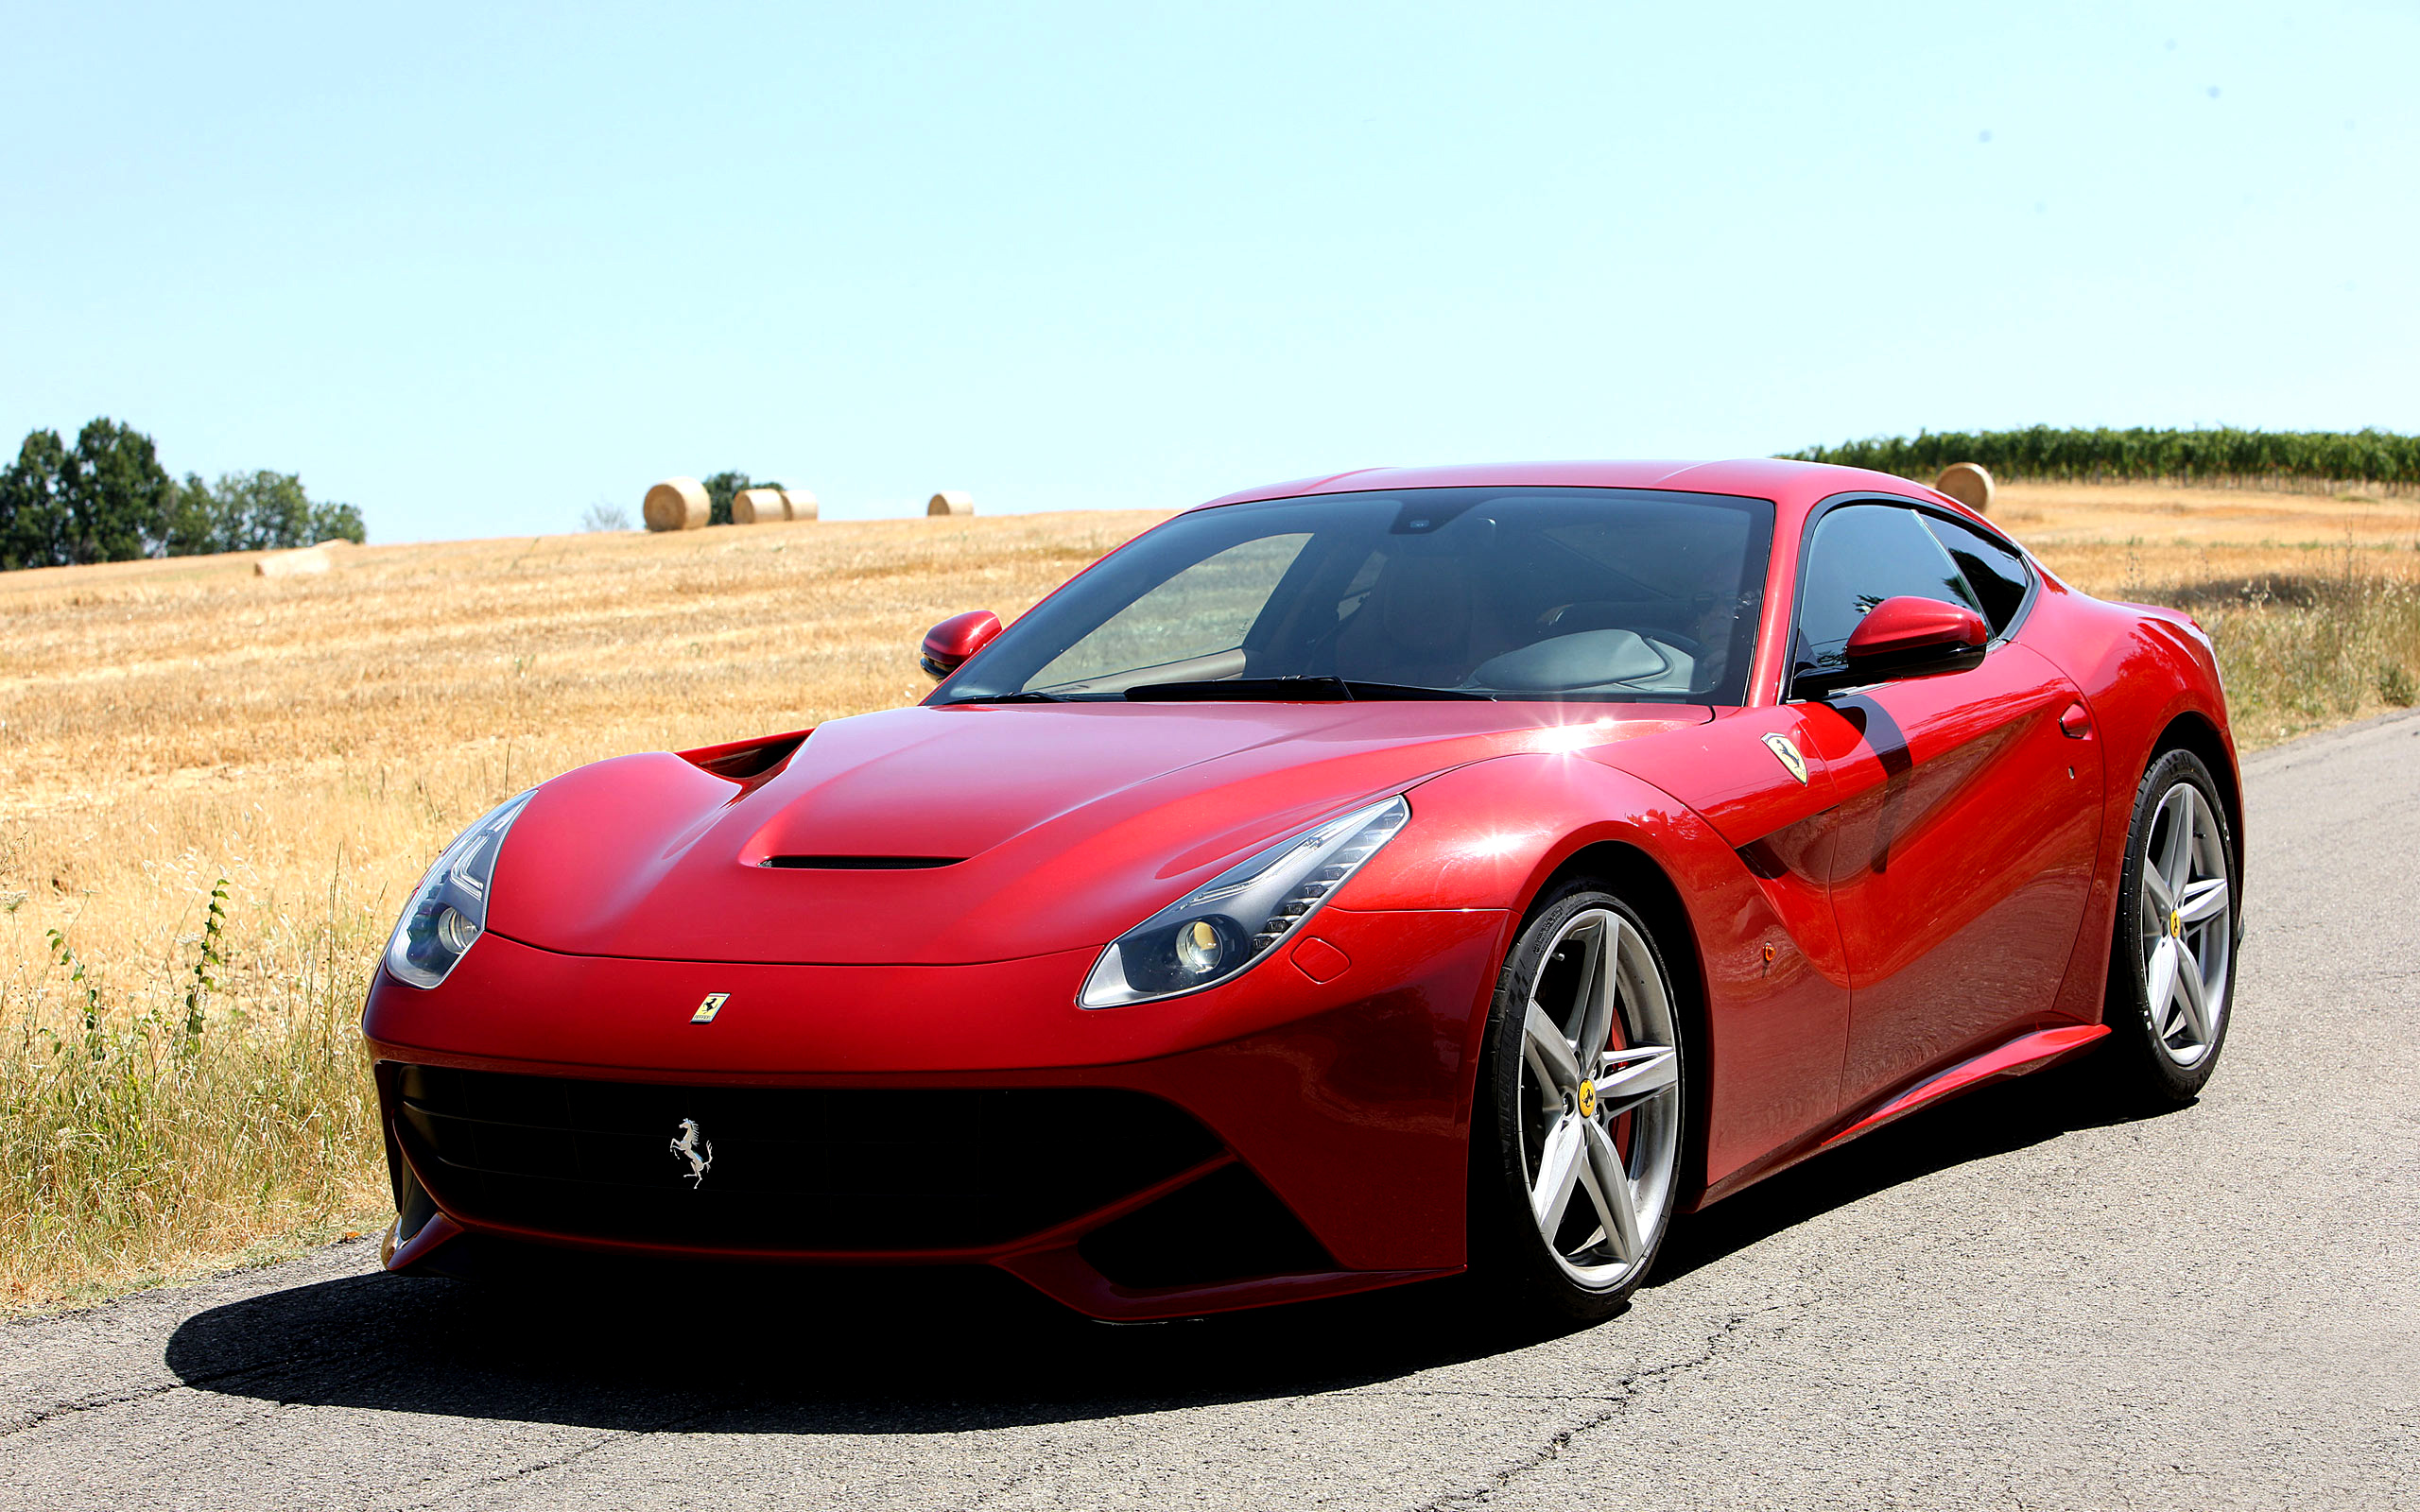 2012 ferrari f12 berlinetta wallpaper hd car wallpapers id 2942. Black Bedroom Furniture Sets. Home Design Ideas